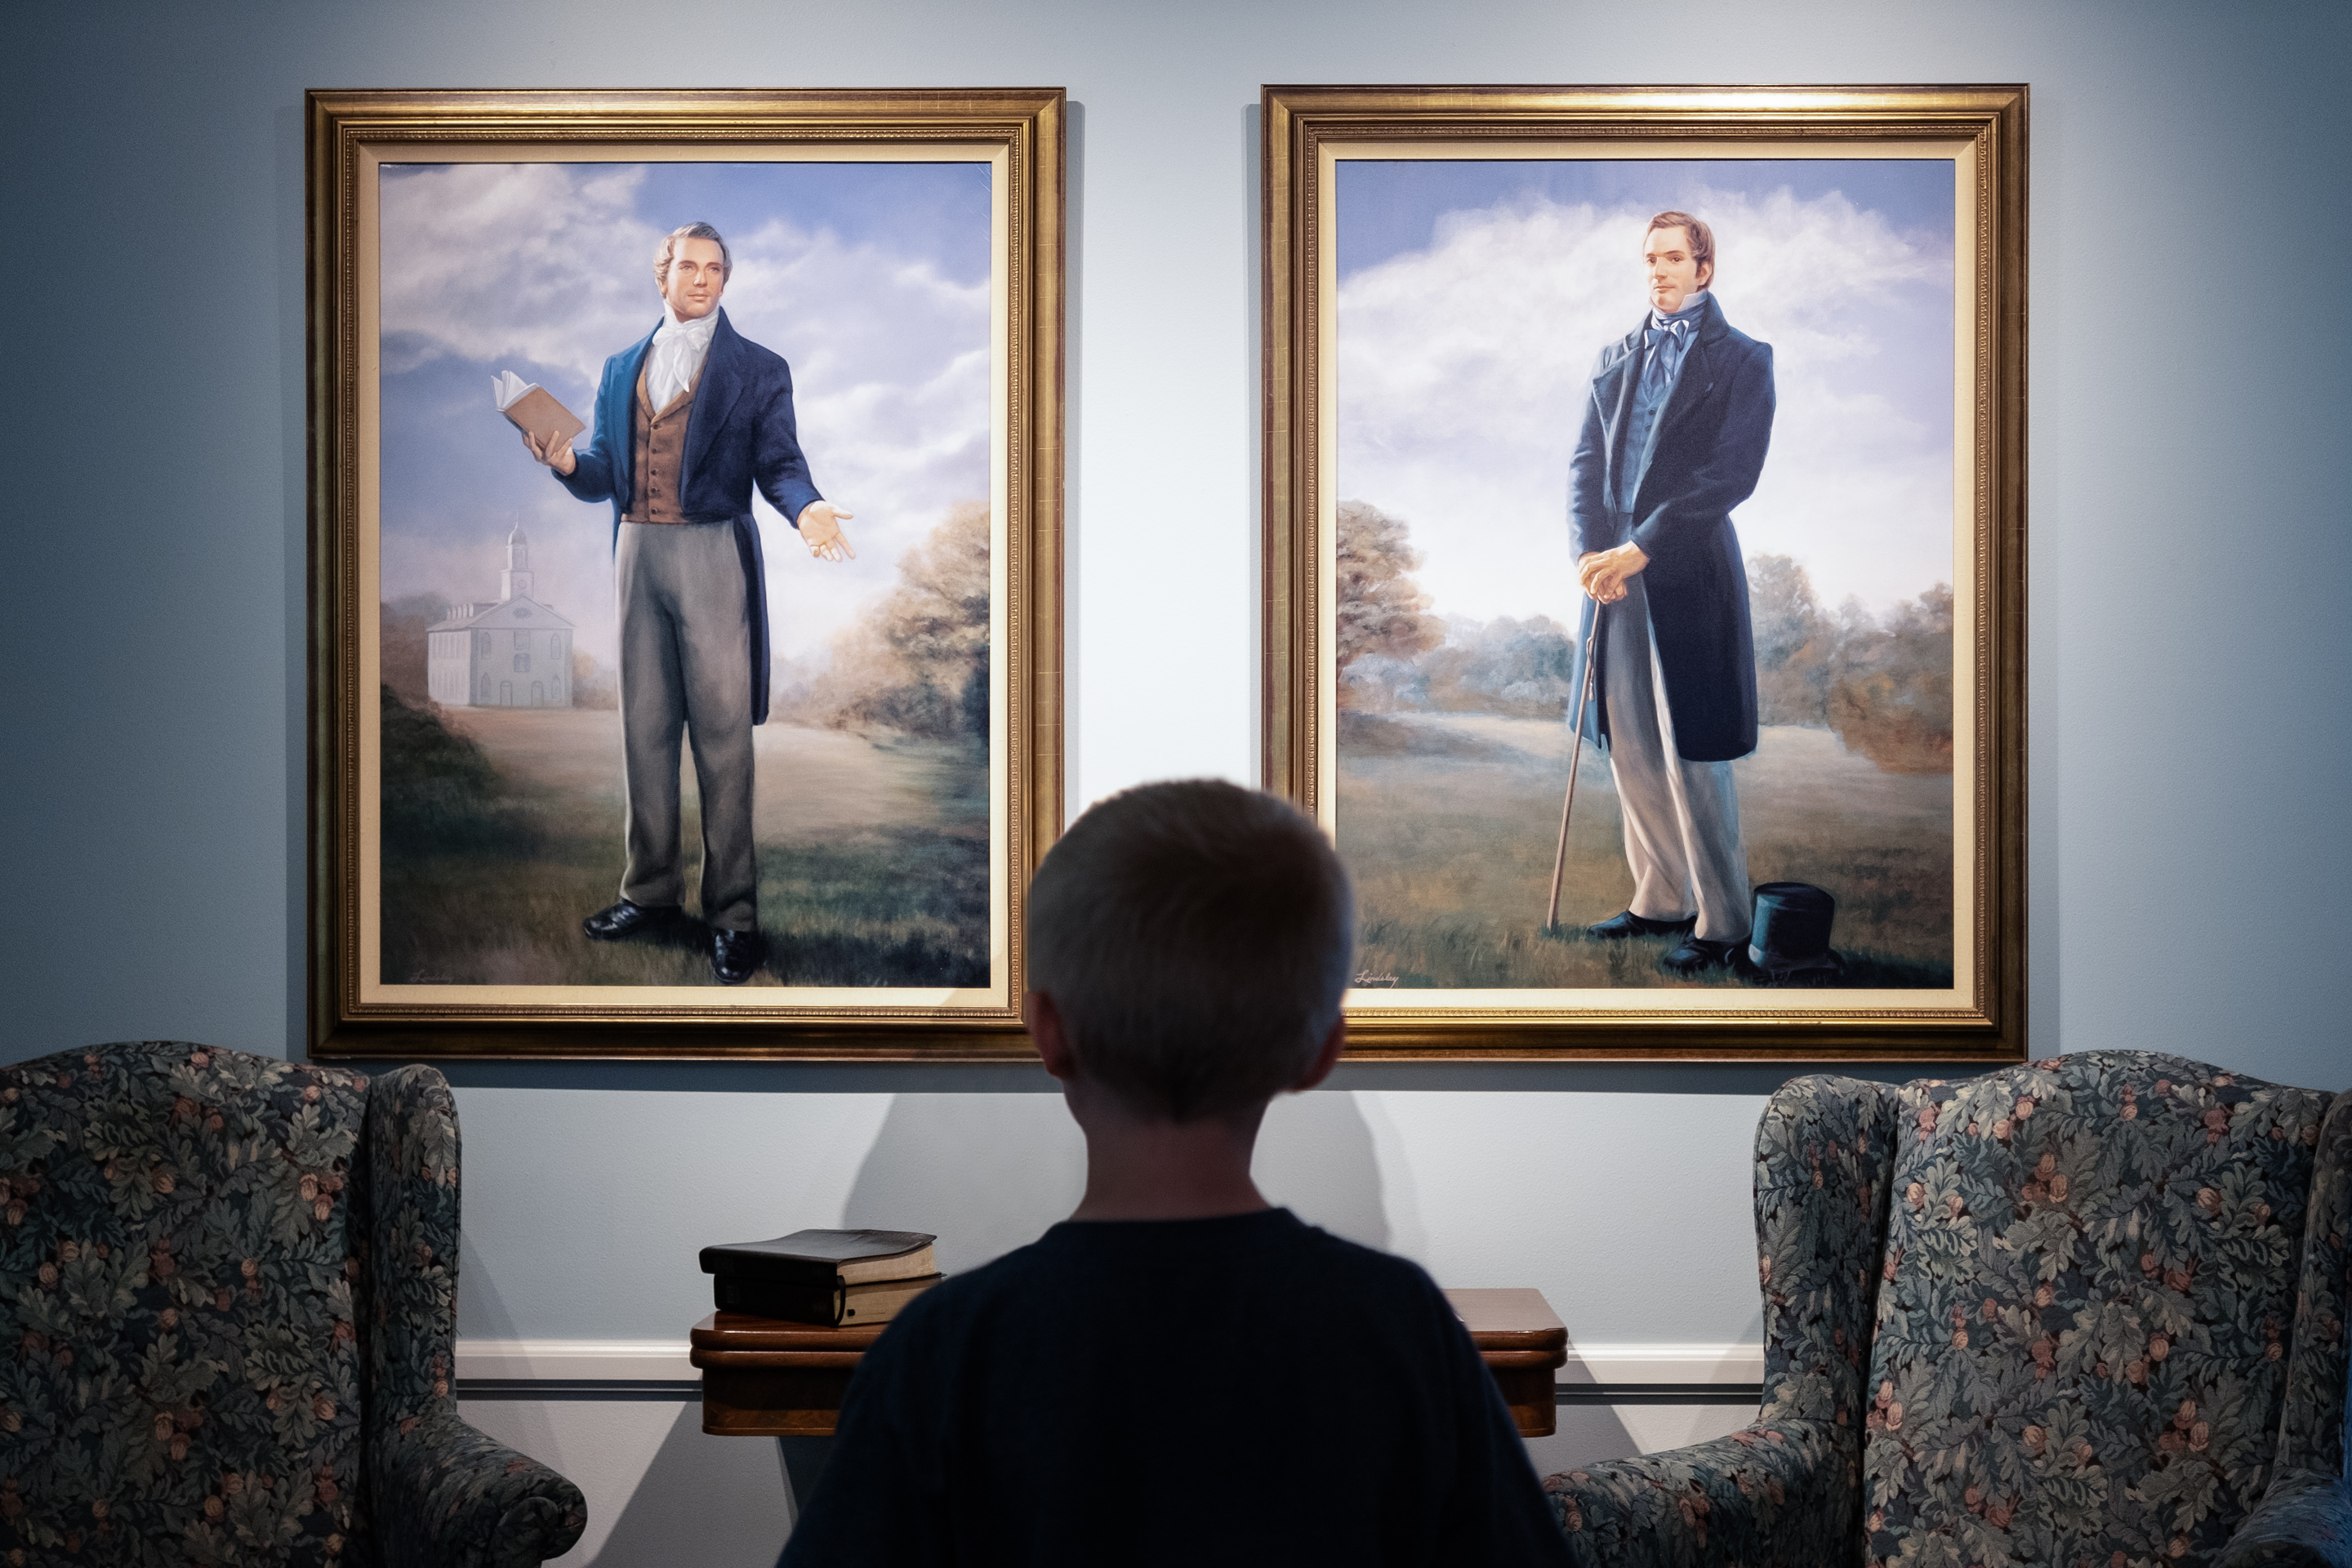 Portraits of Joseph and Hyrum Smith at Carthage Jail Visitor's Center, Carthage, IL, 2019